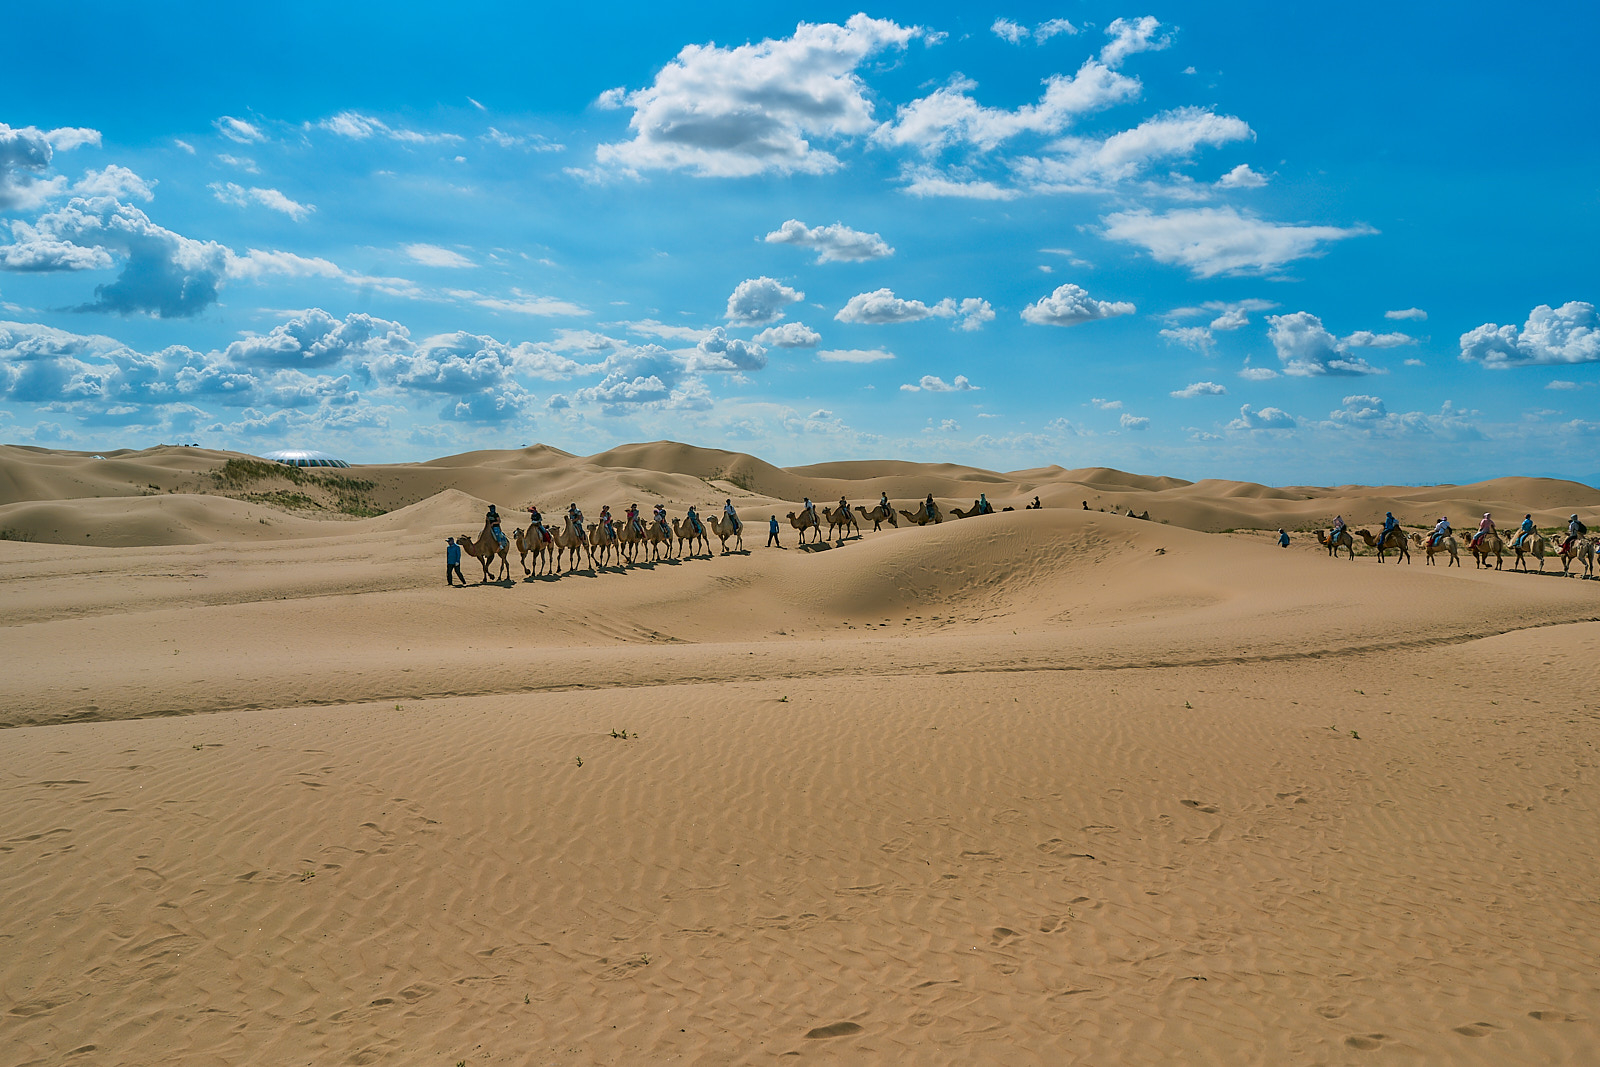 In the Kubuqi Desert